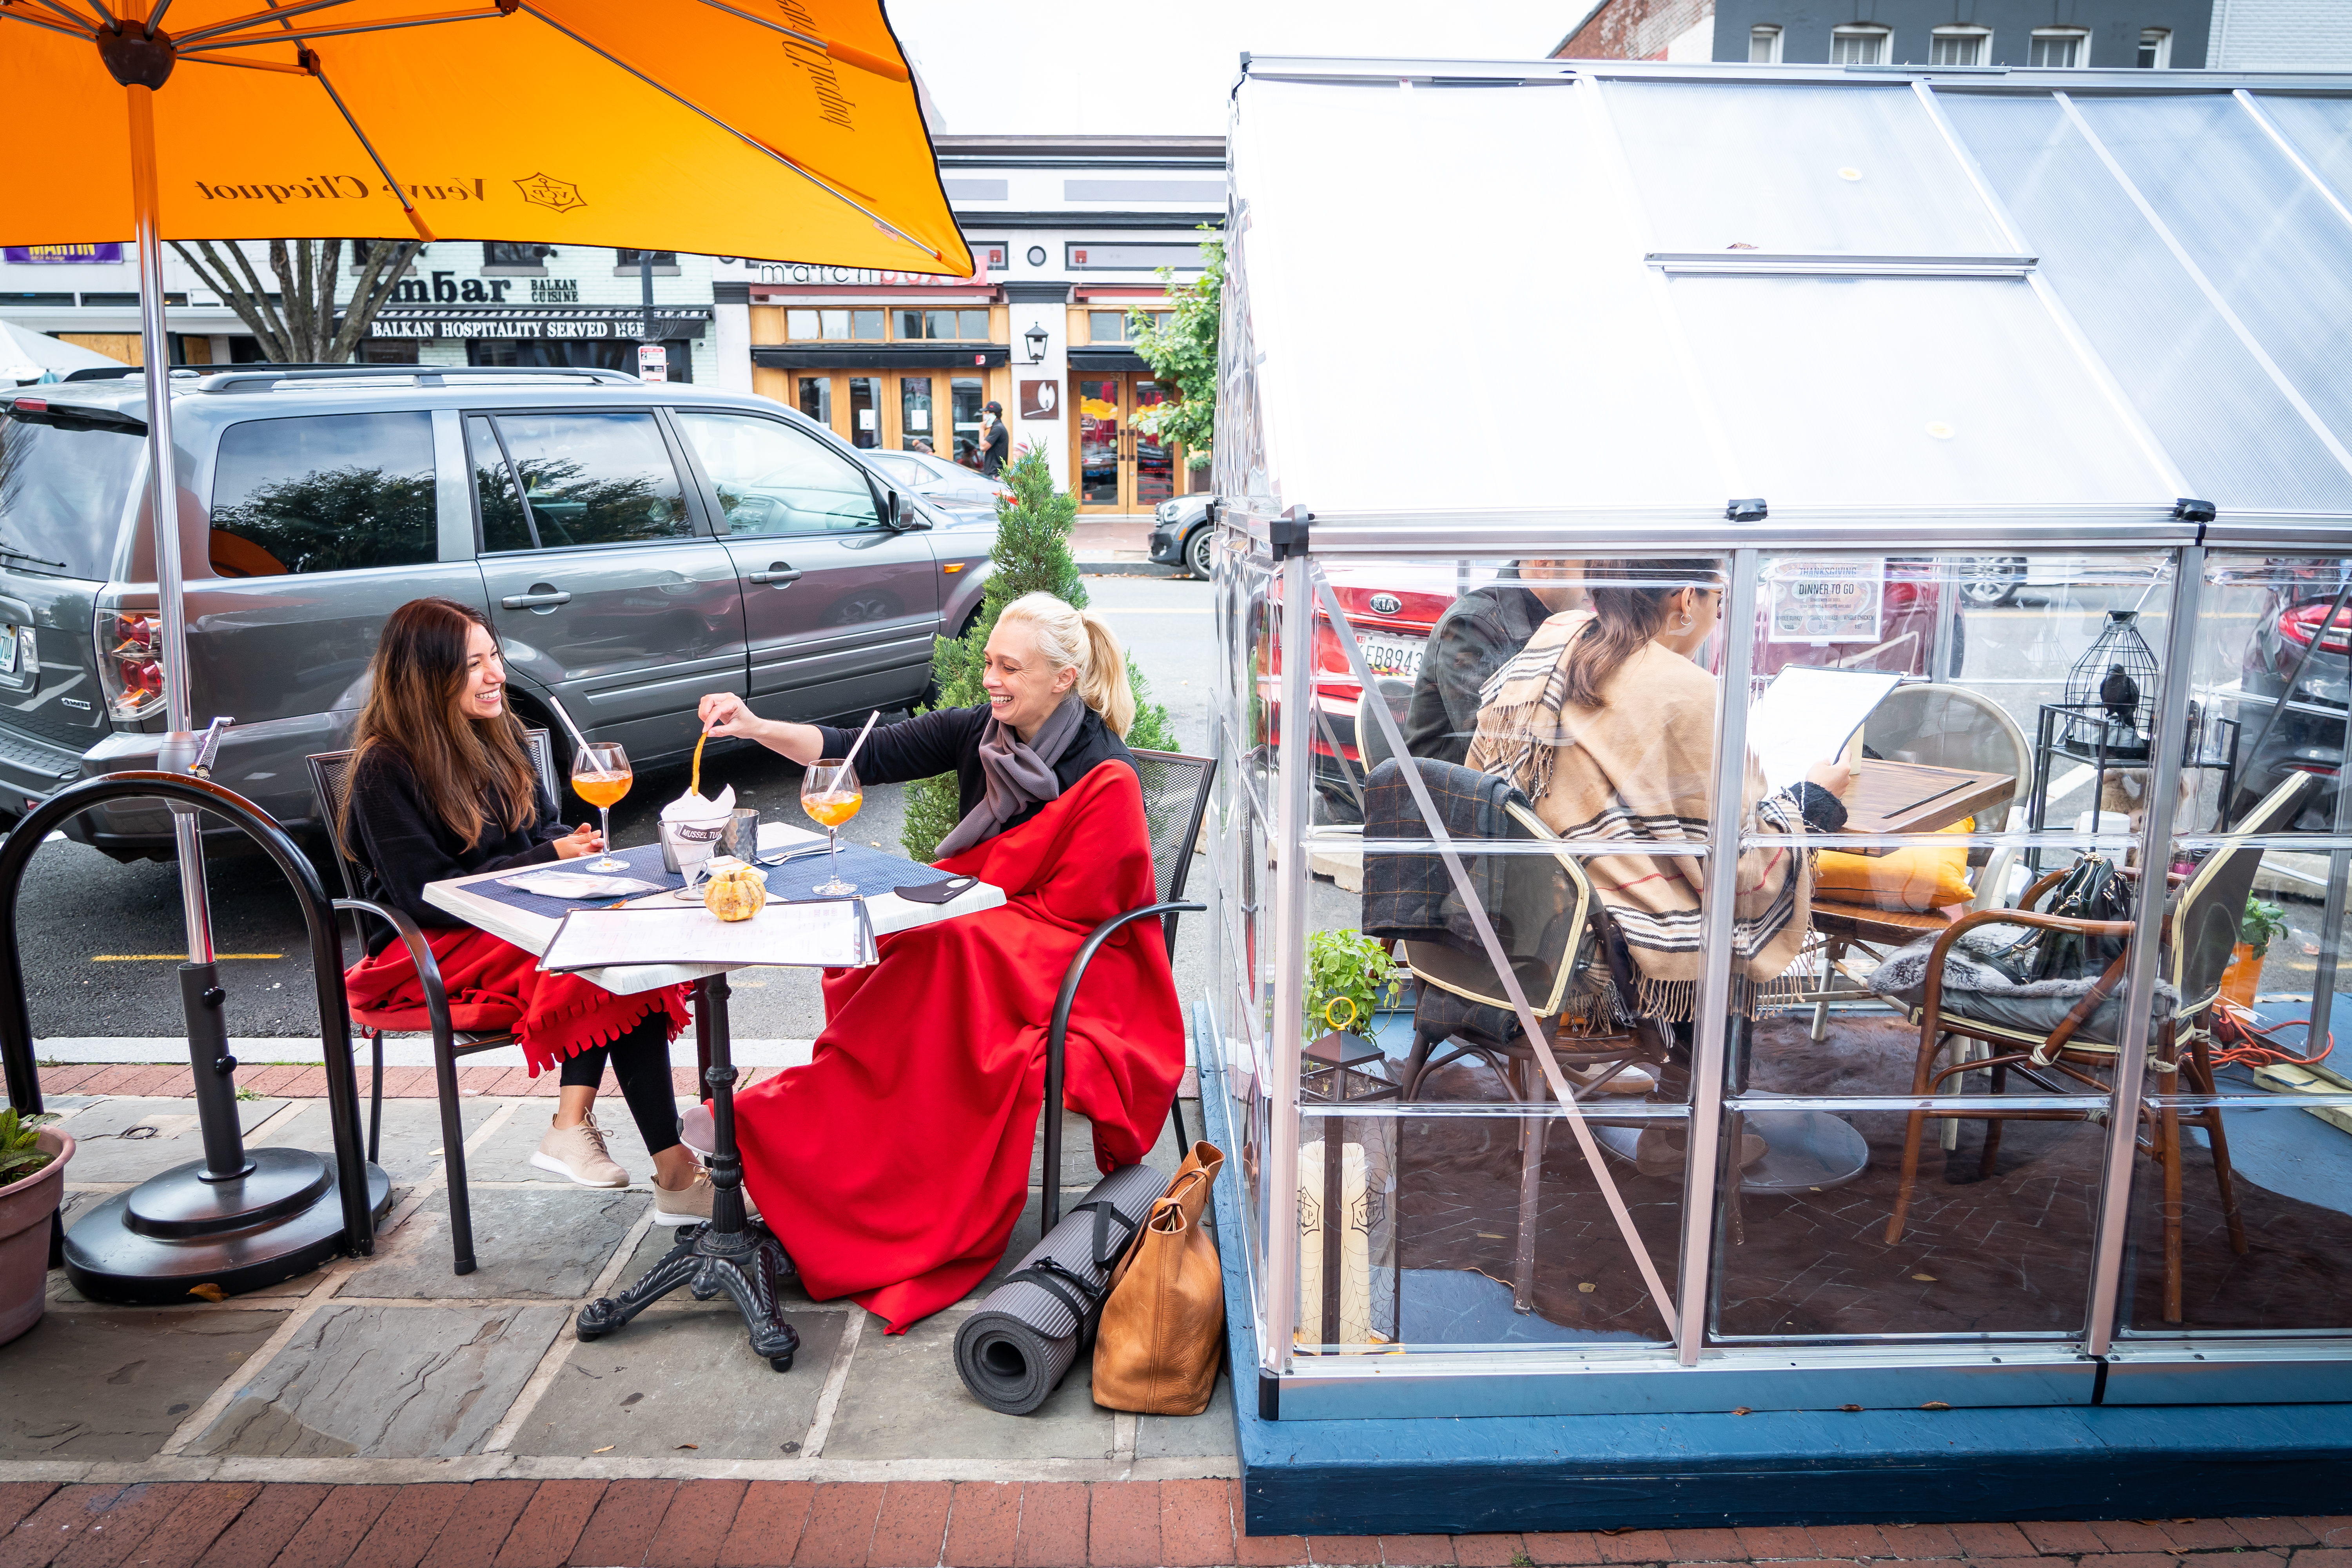 Outdoor Dining In The Cold Advice From Alaska Scandinavia Even The South Pole The Washington Post